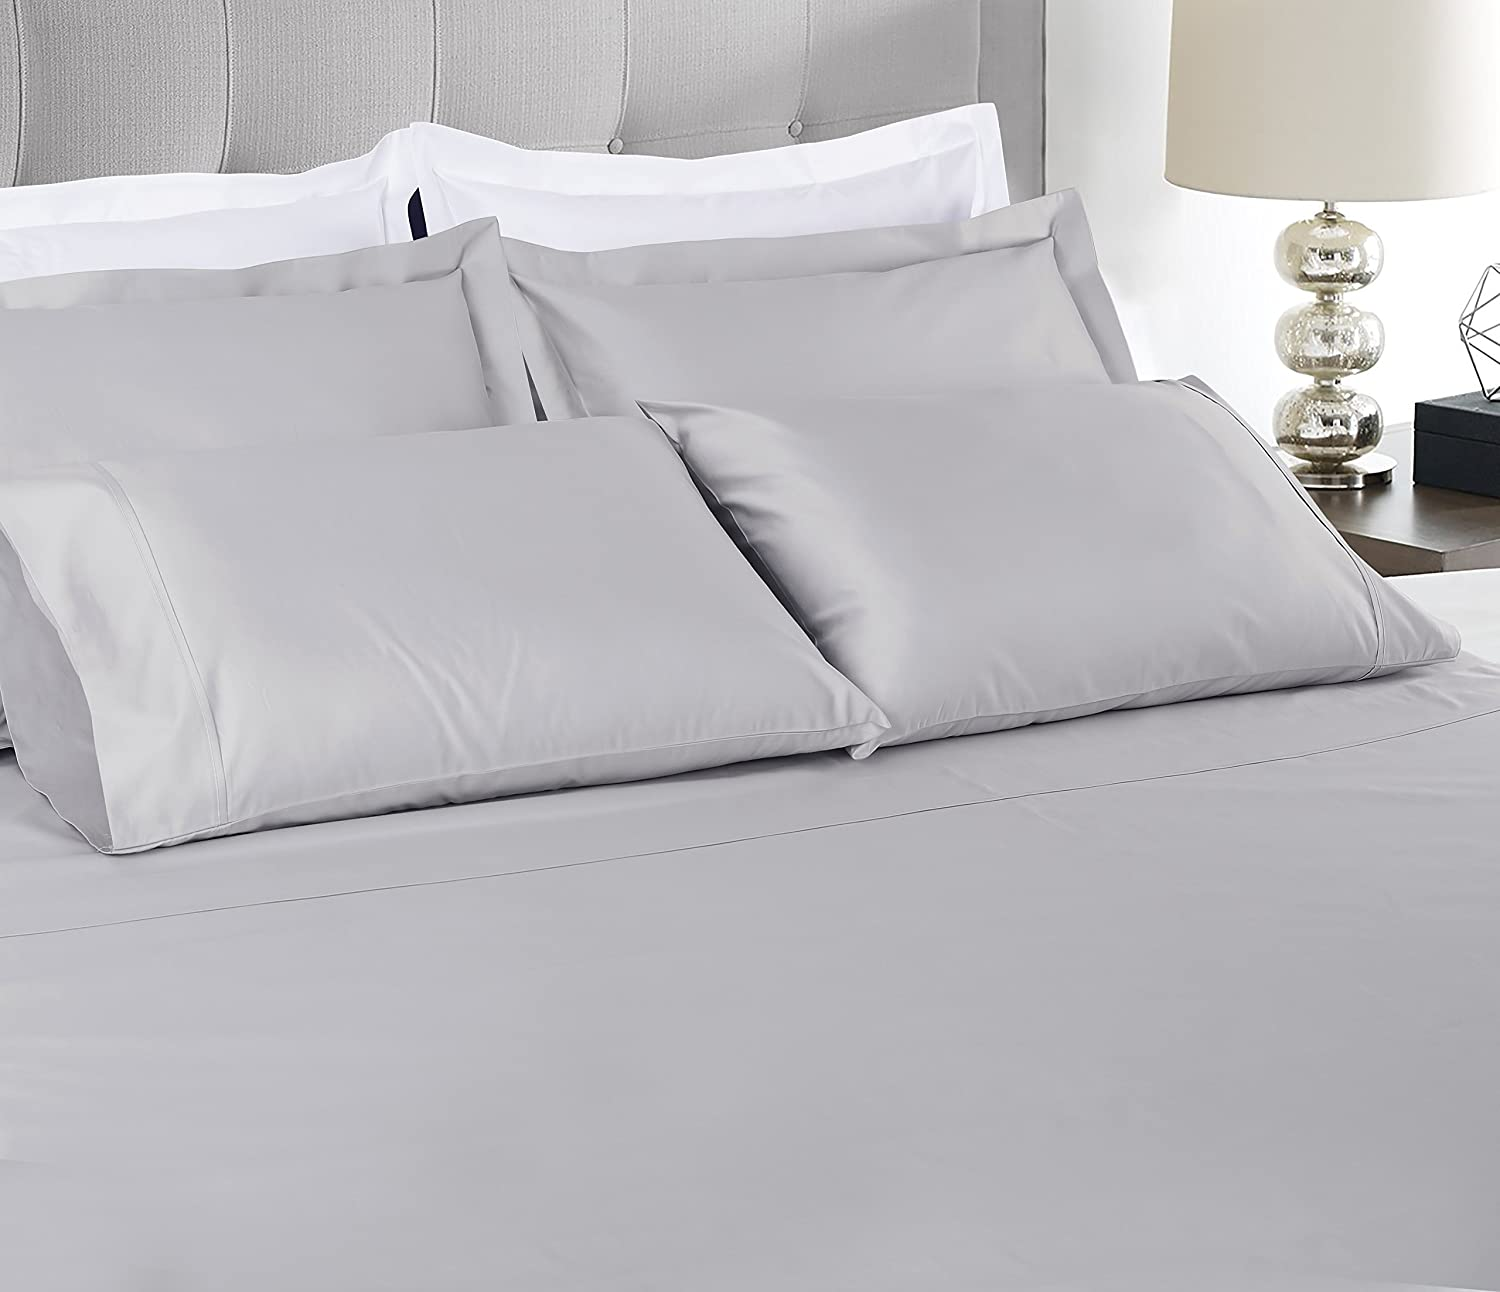 600 Thread Count 100% Extra-Long Staple Cotton Sheet Set,Twin XL Sheets, Luxury Bedding, Twin XL Sheets 3 Piece Set ,Smooth Sateen Weave,White, by Threadmill Home Linen